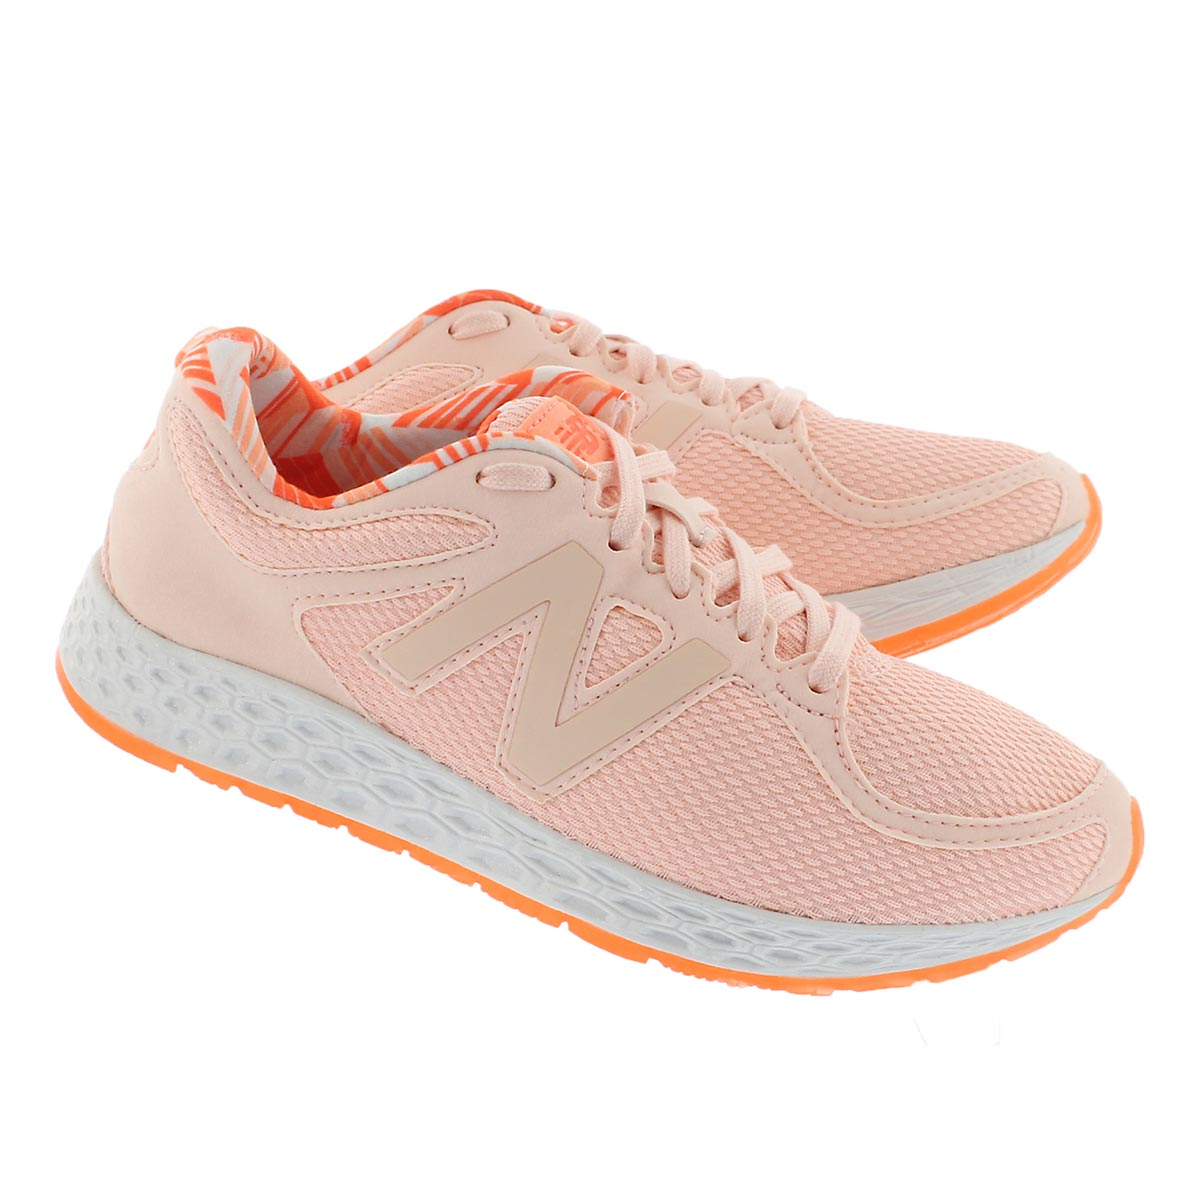 Lds Zan sunrise glow lace up sneaker